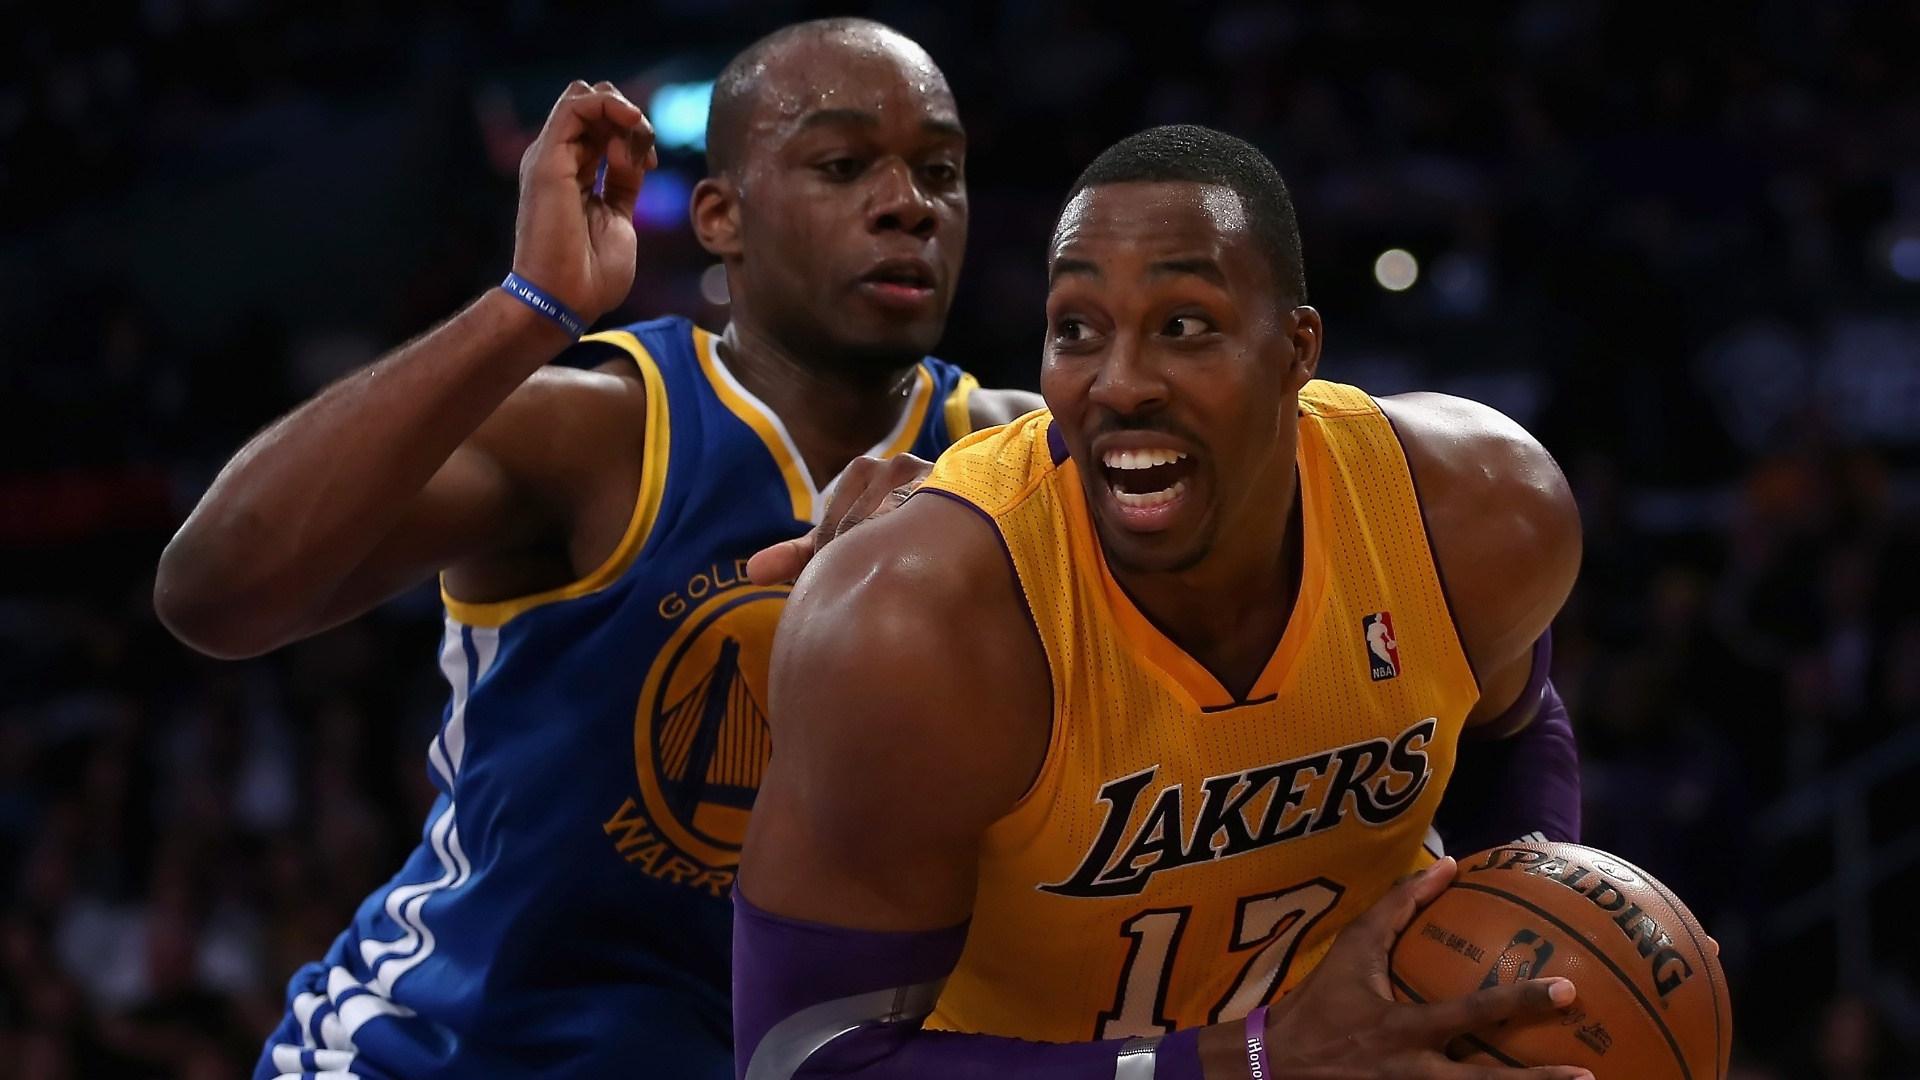 Dwight Howard se prepara para ir  cesta no jogo entre Los Angeles Lakers e Golden State Warriors, o primeiro da equipe da Califrnia aps a demisso do tcnico Mike Brown